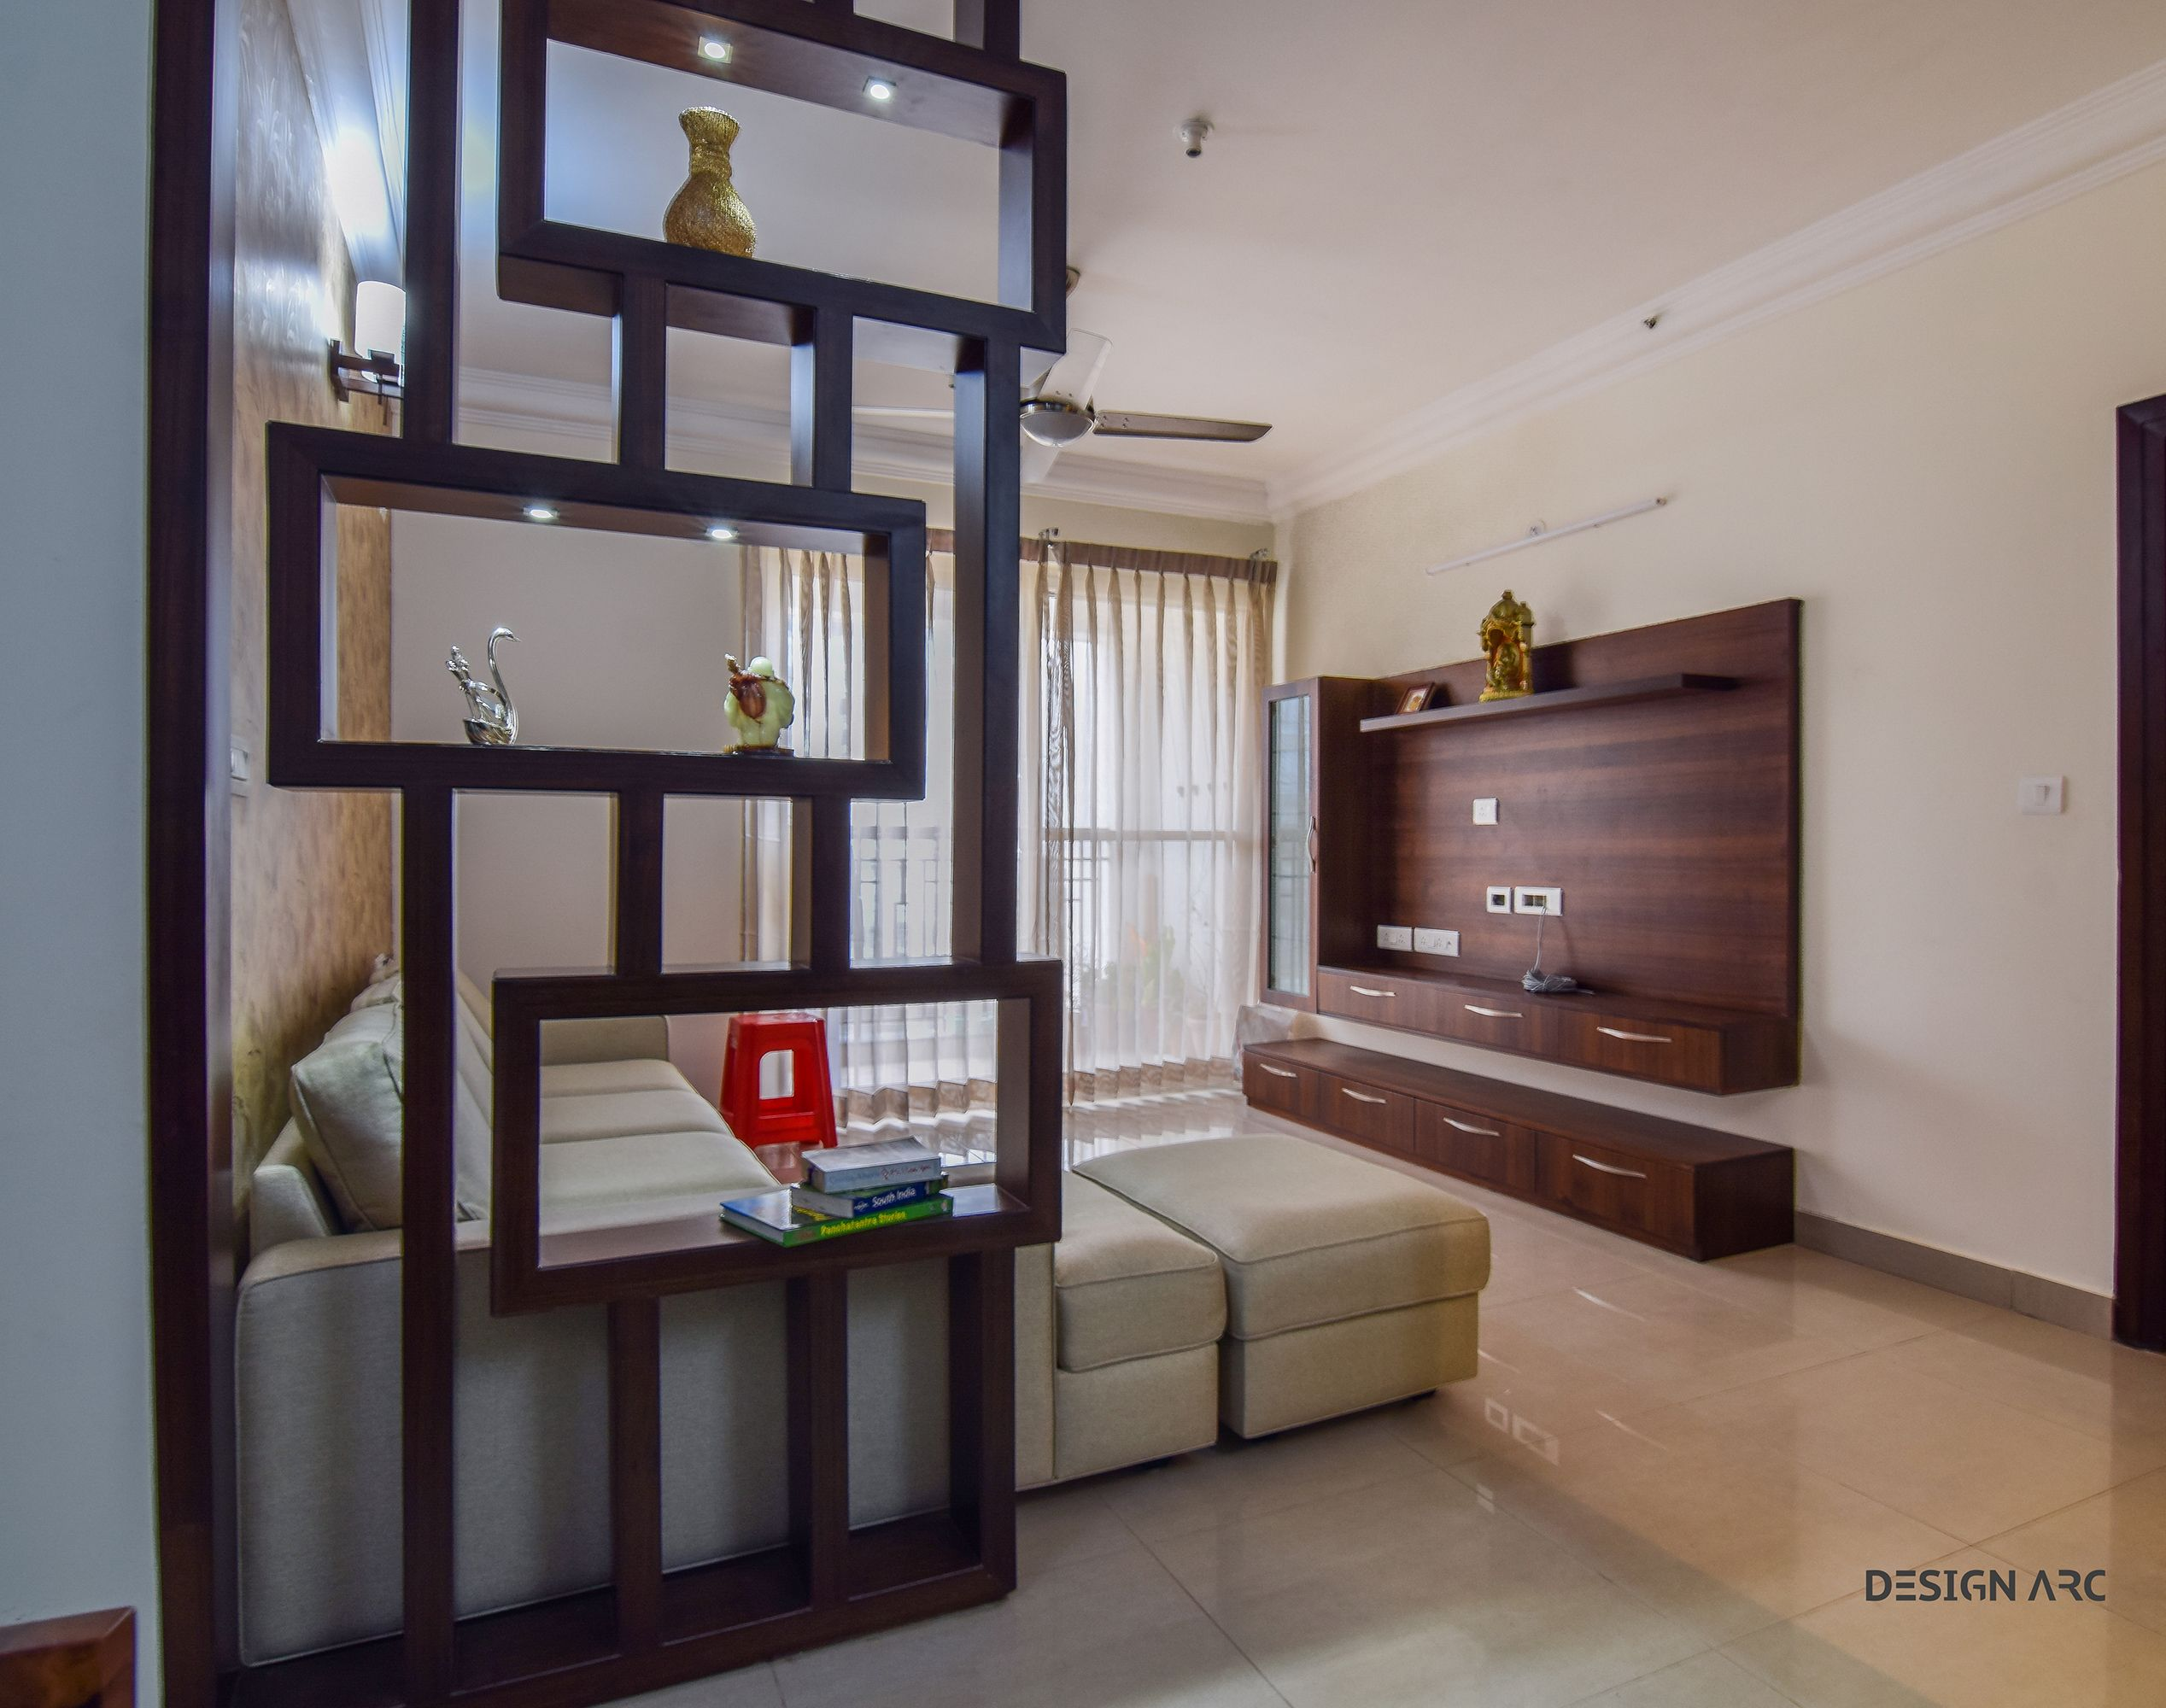 Interior design bangalore tv unit design concept living for 2 bedroom flat decorating ideas